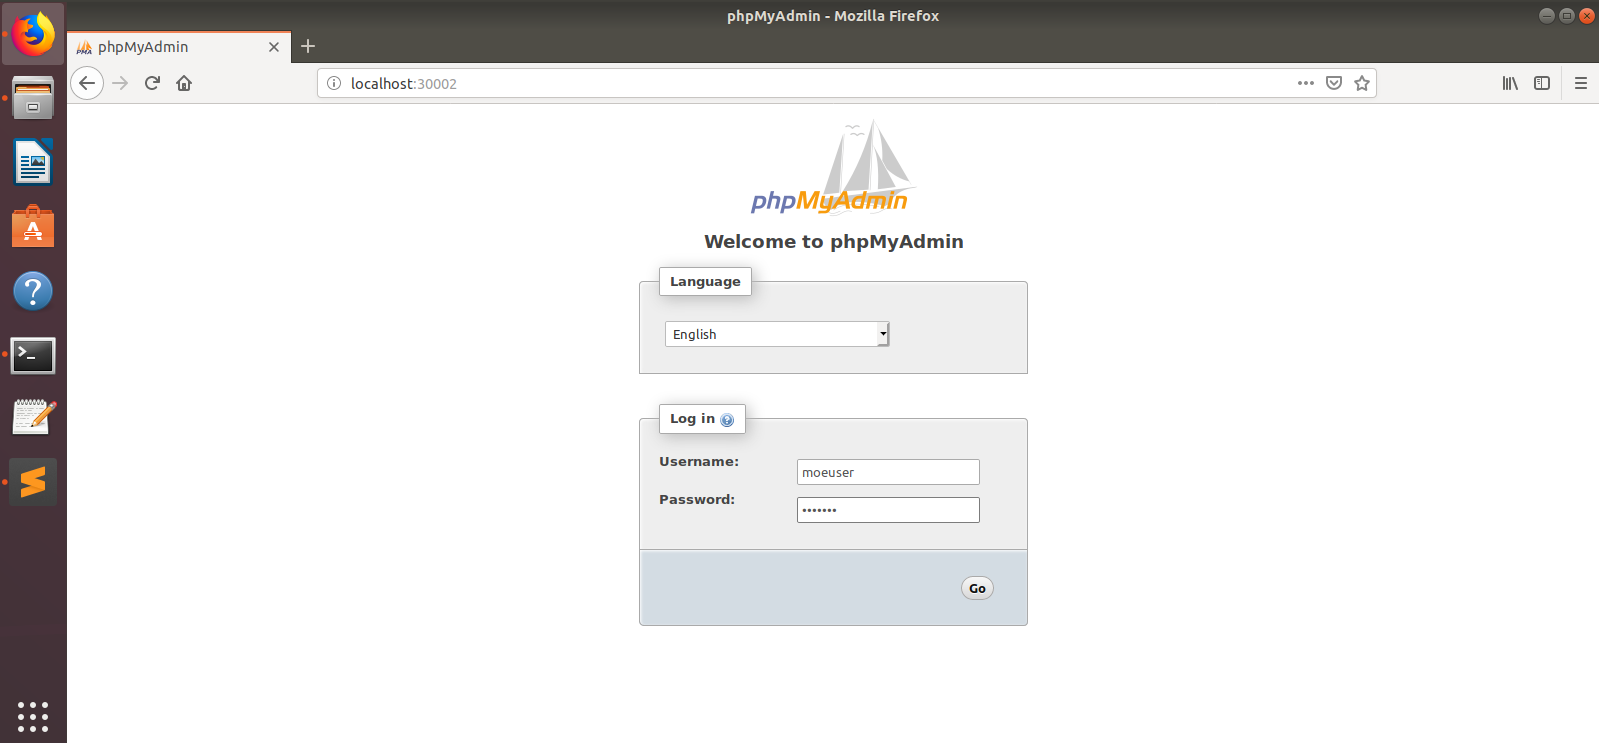 PHPMyAdmin access to the docker application